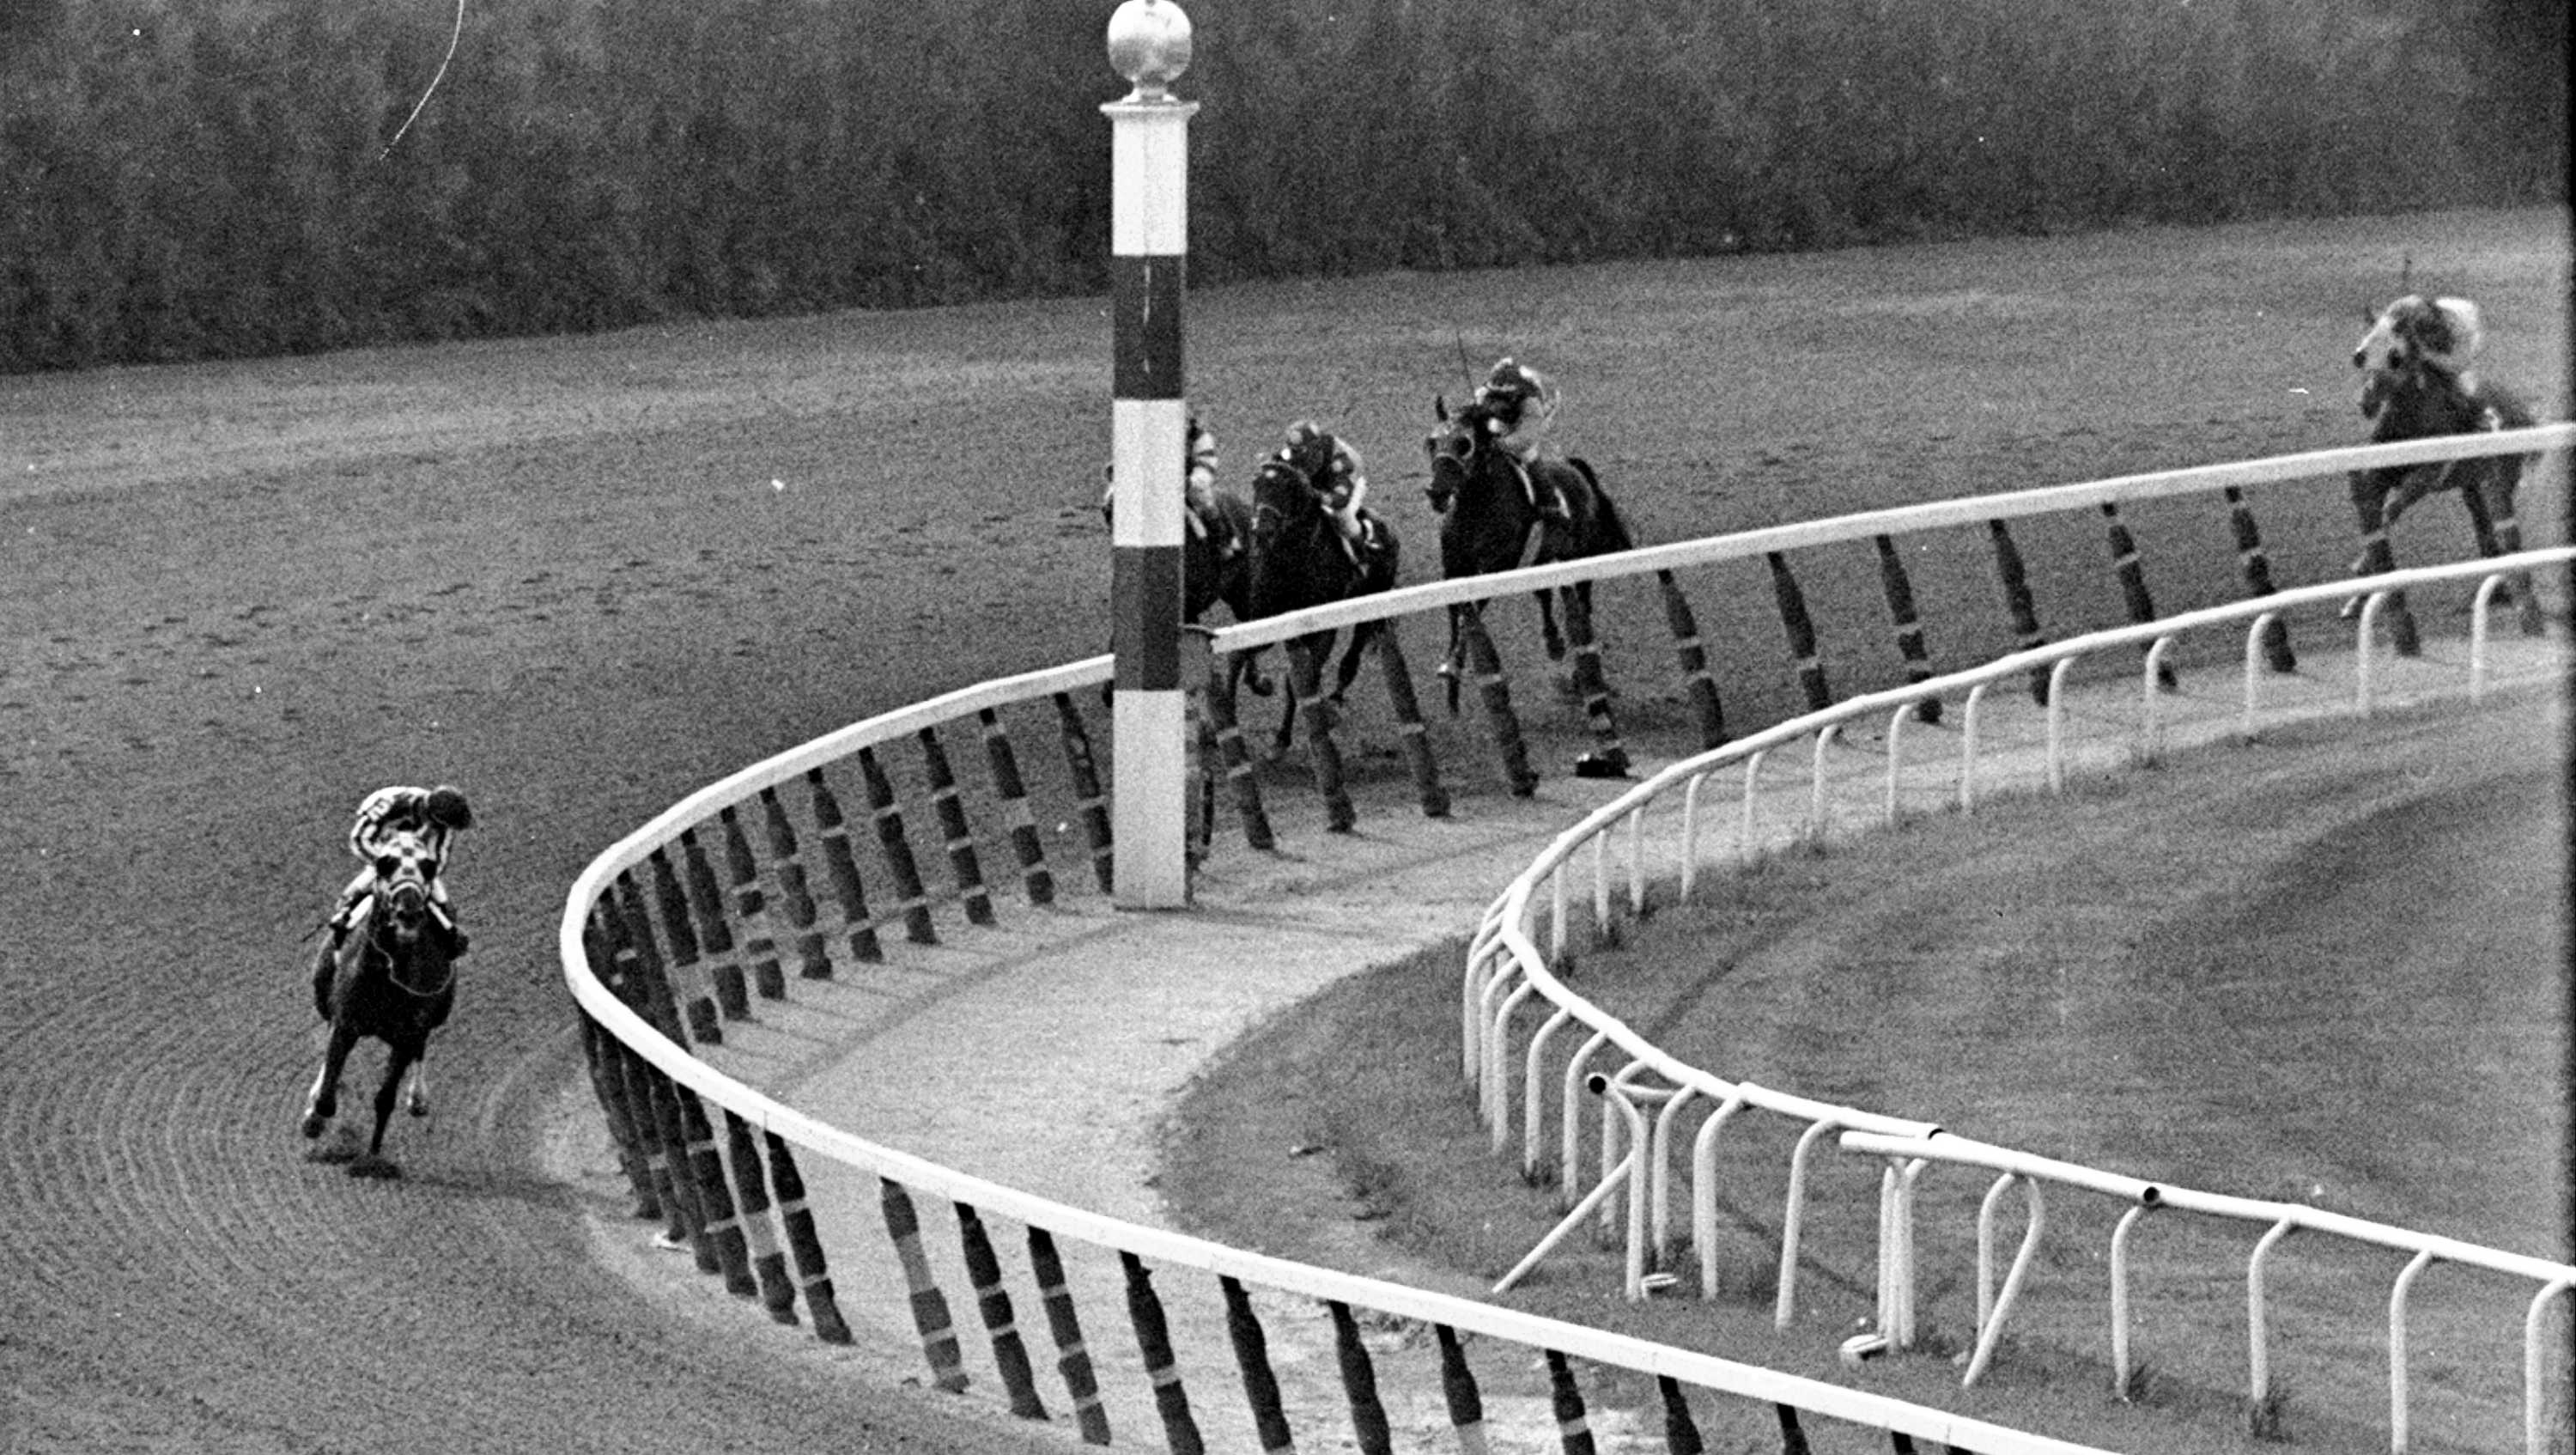 In this June 9, 1973, file photo, jockey Ron Turcotte, left, aboard Secretariat, turns for a look at the field behind, as they make the final turn on their way to winning the 1973 Triple Crown in the Belmont Stakes horse race at Belmont Park in Elmont, N.Y.